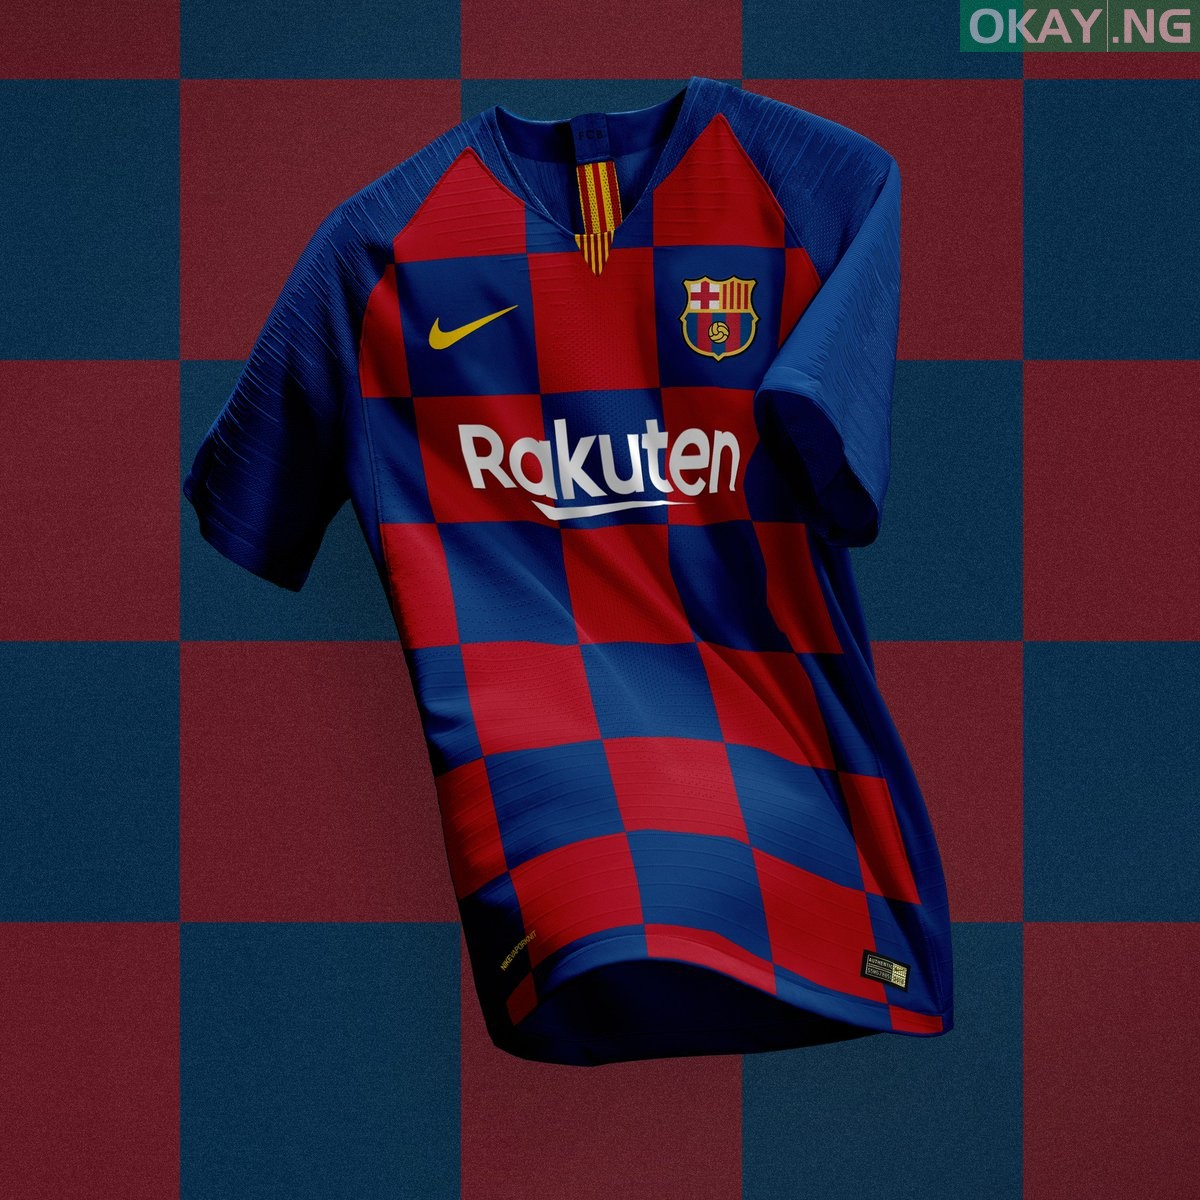 DoIZnTVVsAEB3q0 - Barcelona New Home Kit for 2019-2020 Season leaked [See Photo]